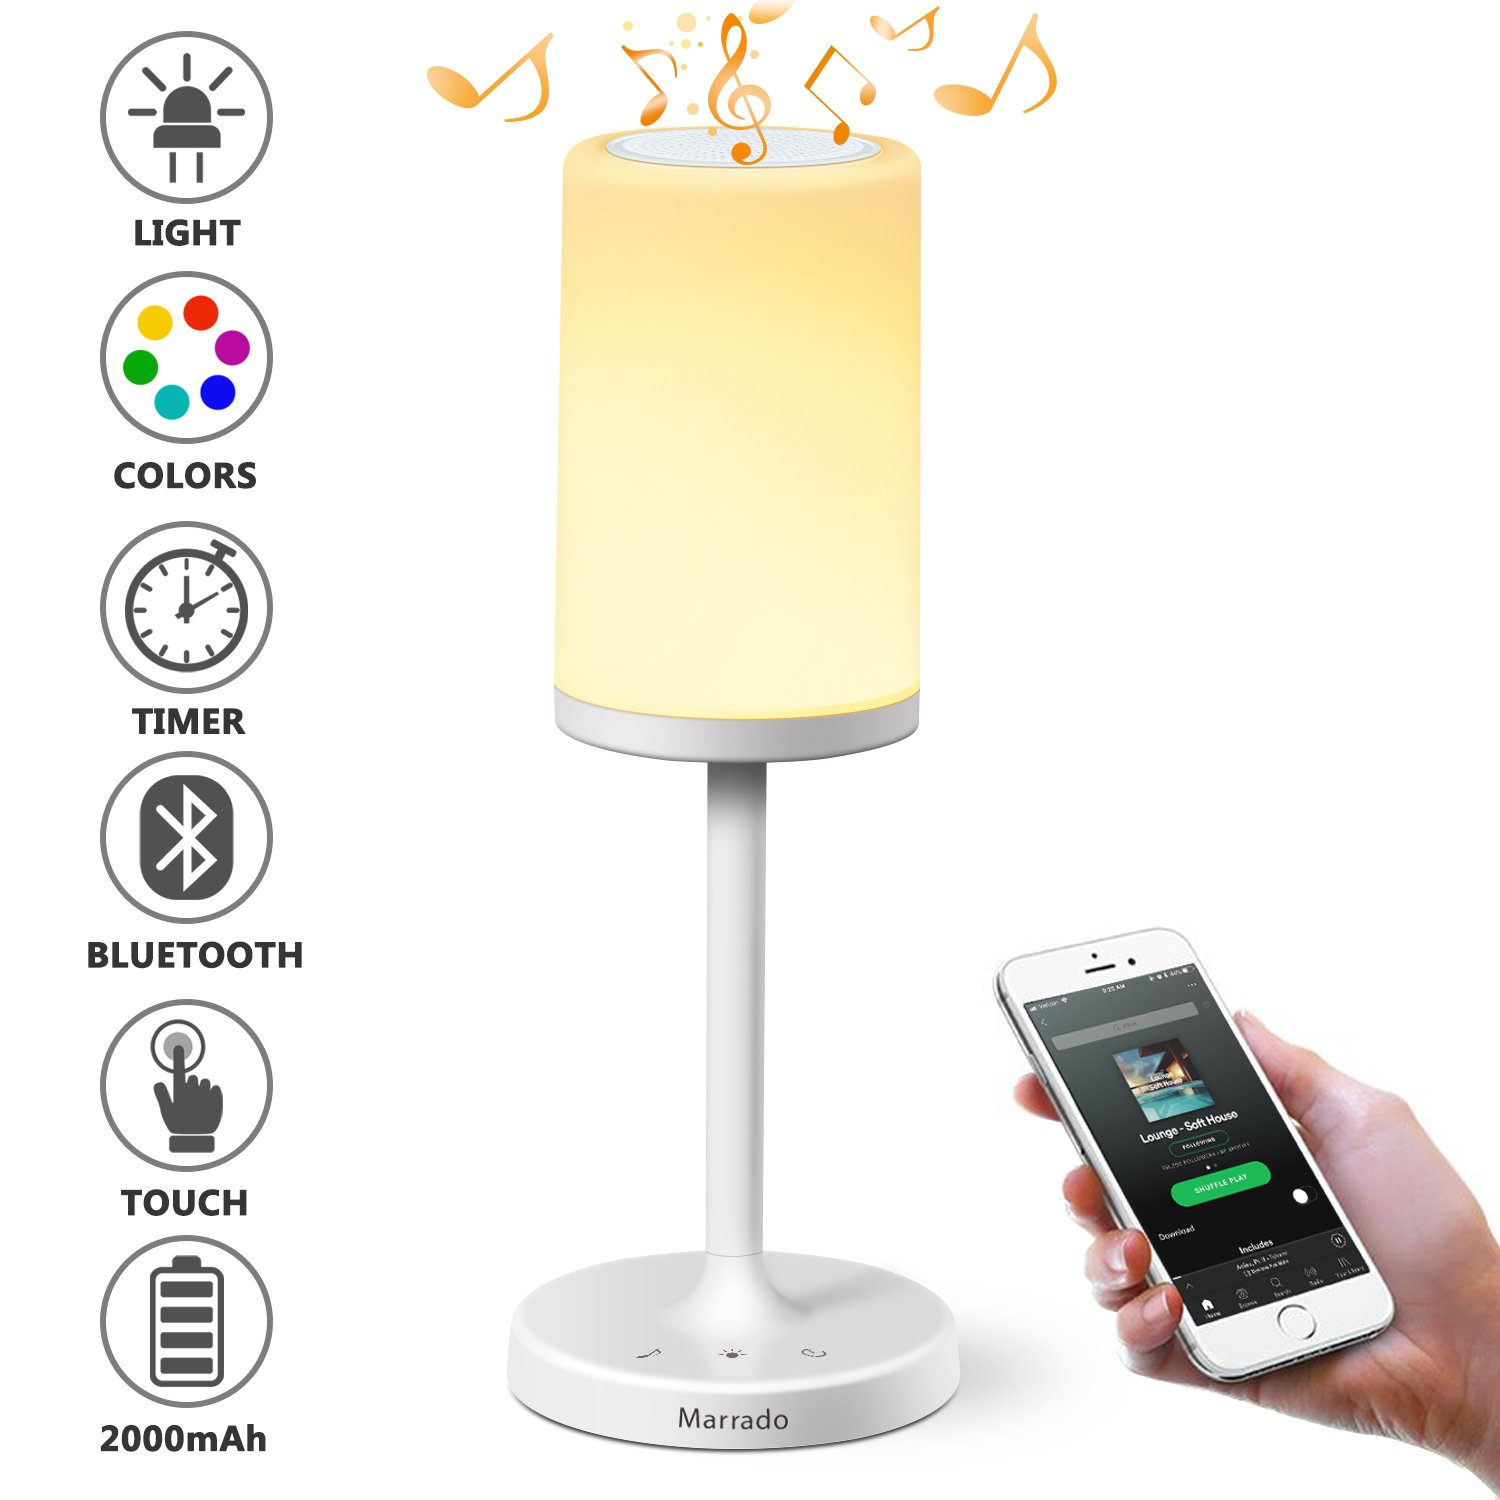 Marrado Bluetooth Speakers + Bedside Lamp, Night Light, Smart Touch Control Table Lamp for Bedroom Living Room, Portable Rechargeable LED Desk Lamp, Dimmable Warm White & Color Changing